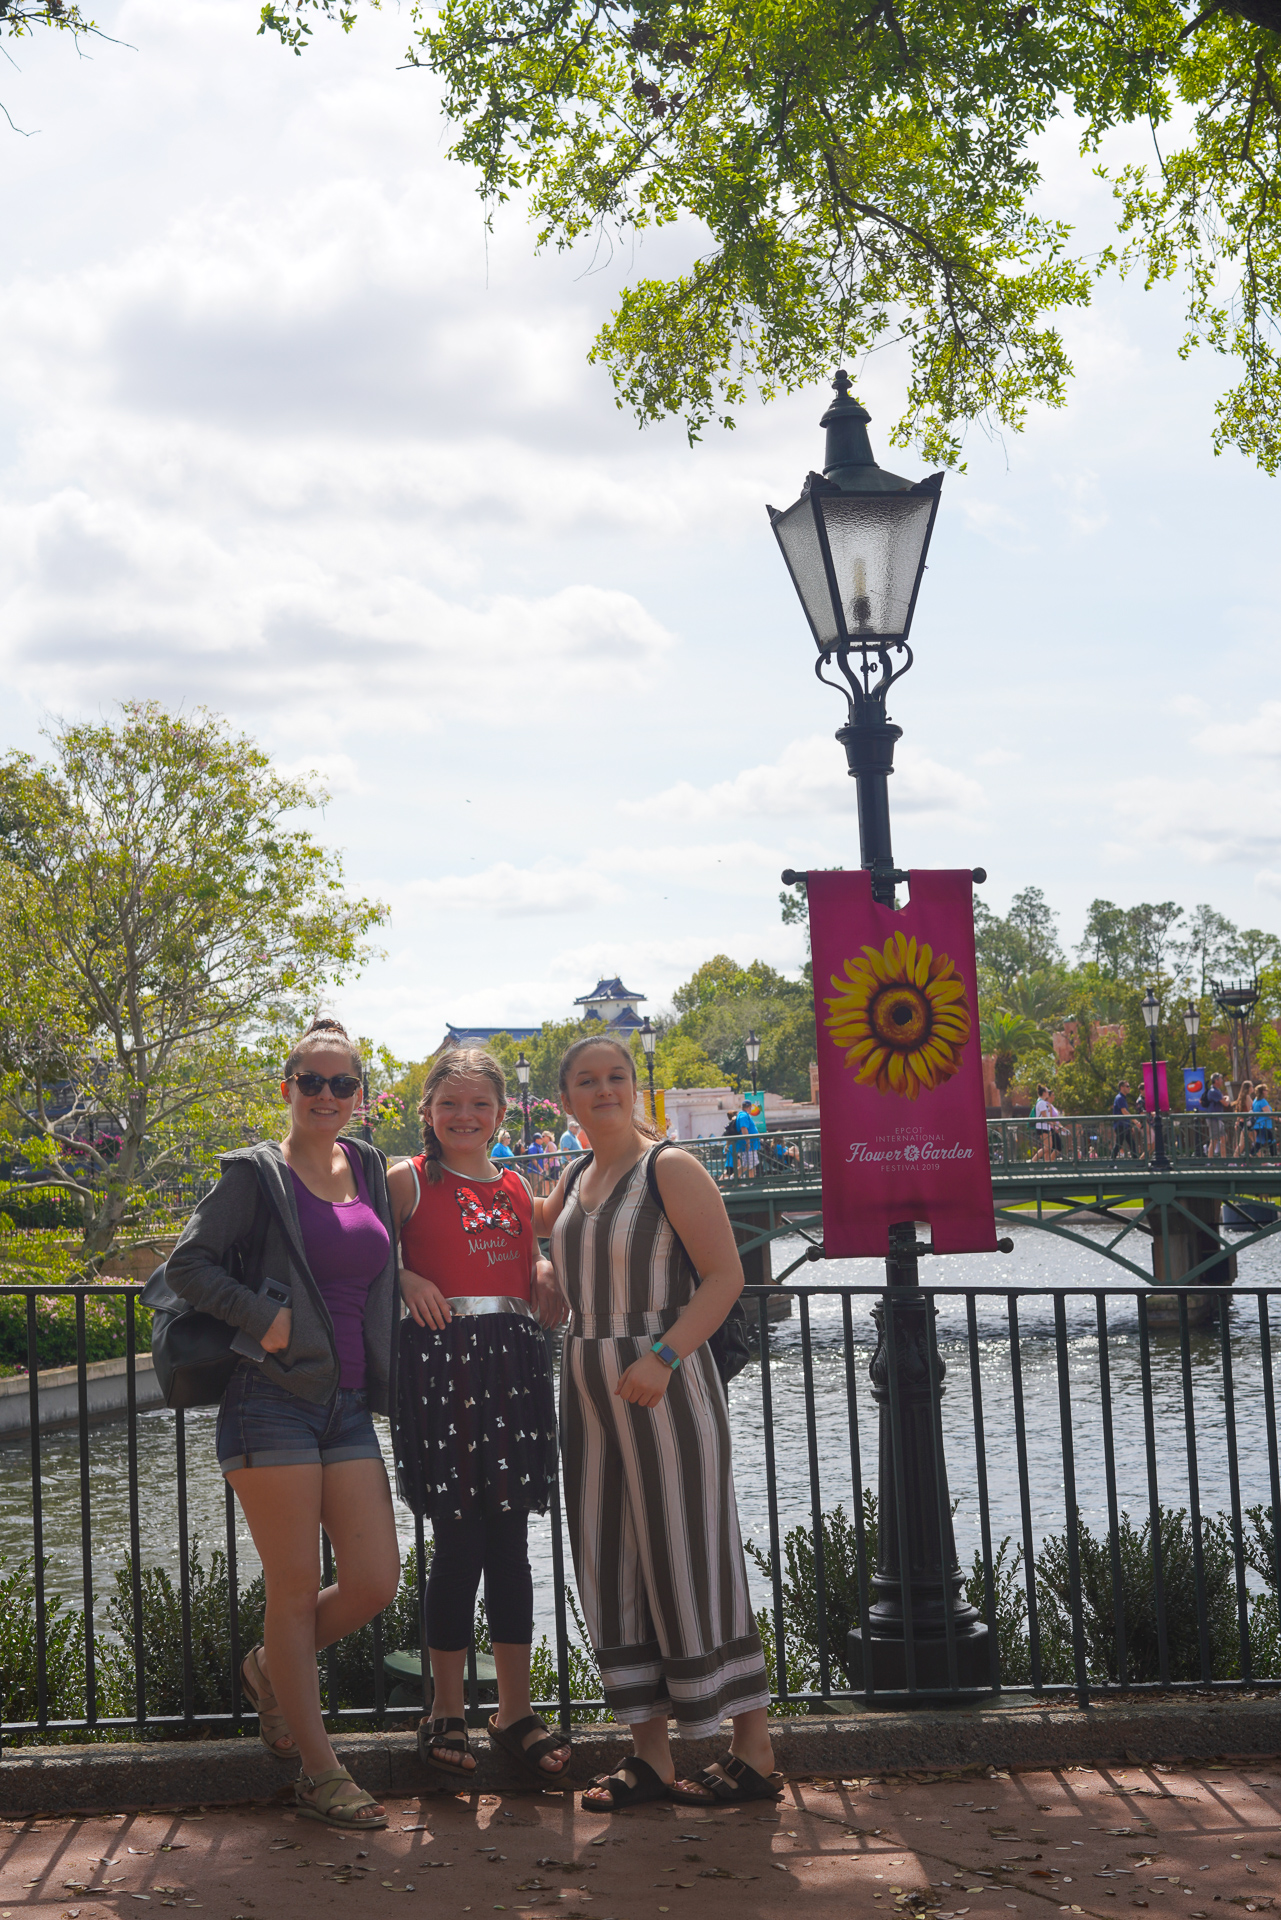 Three girls in Epcot during the Flower and Garden Festival at Walt Disney World